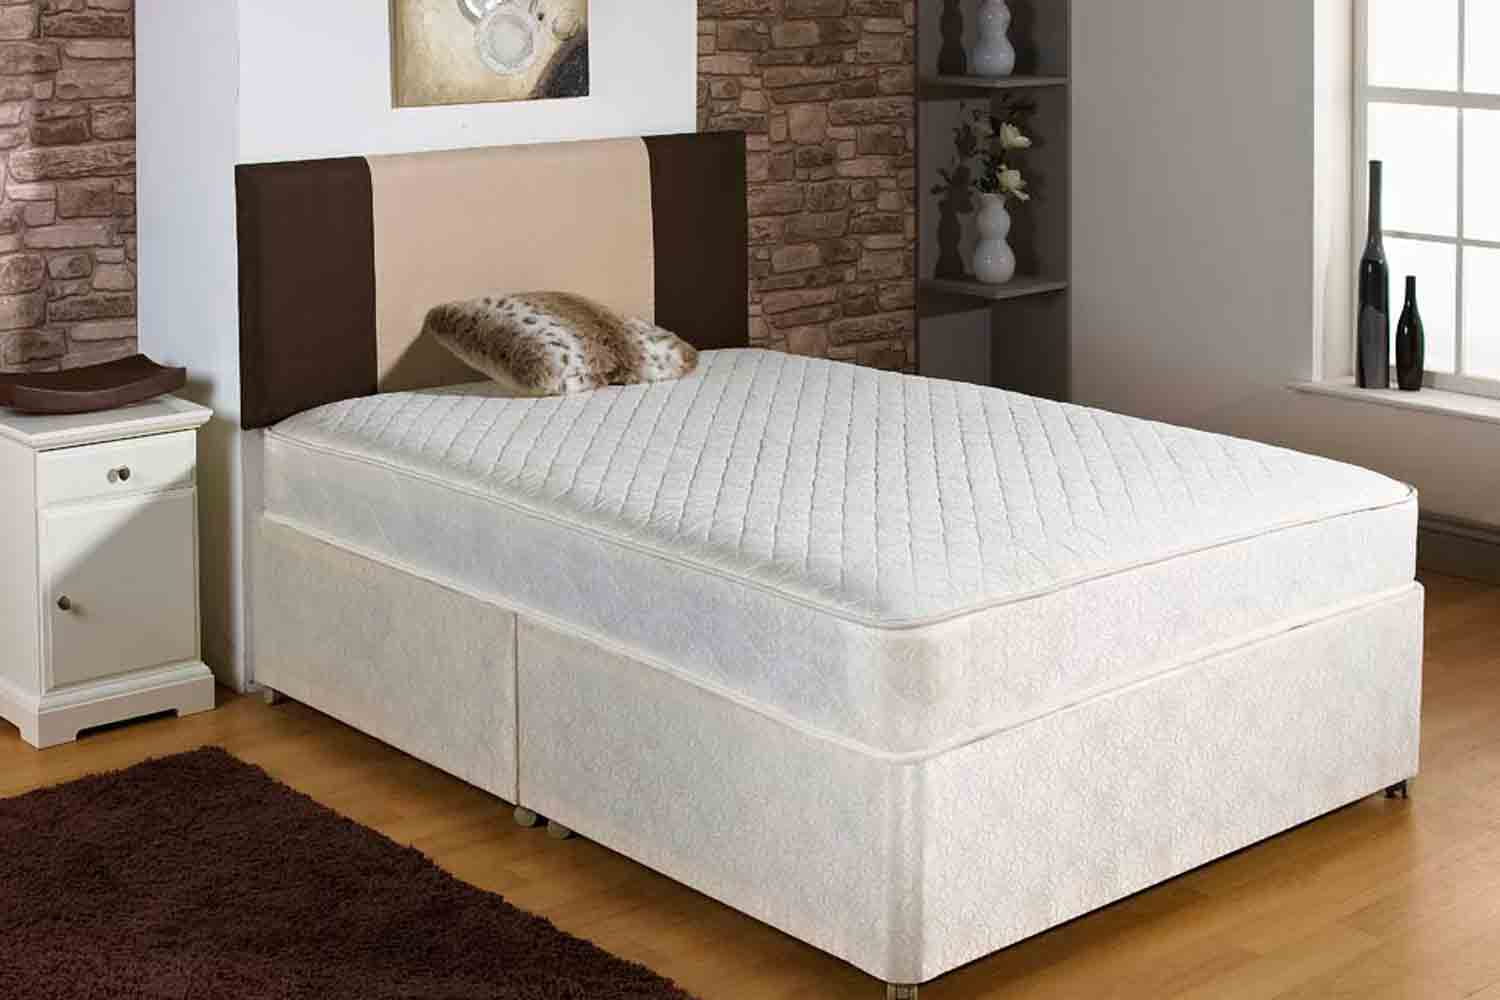 Joseph Diamond Pace Comfort Coil Spring Divan Bed -Small Double-End Opening Ottoman